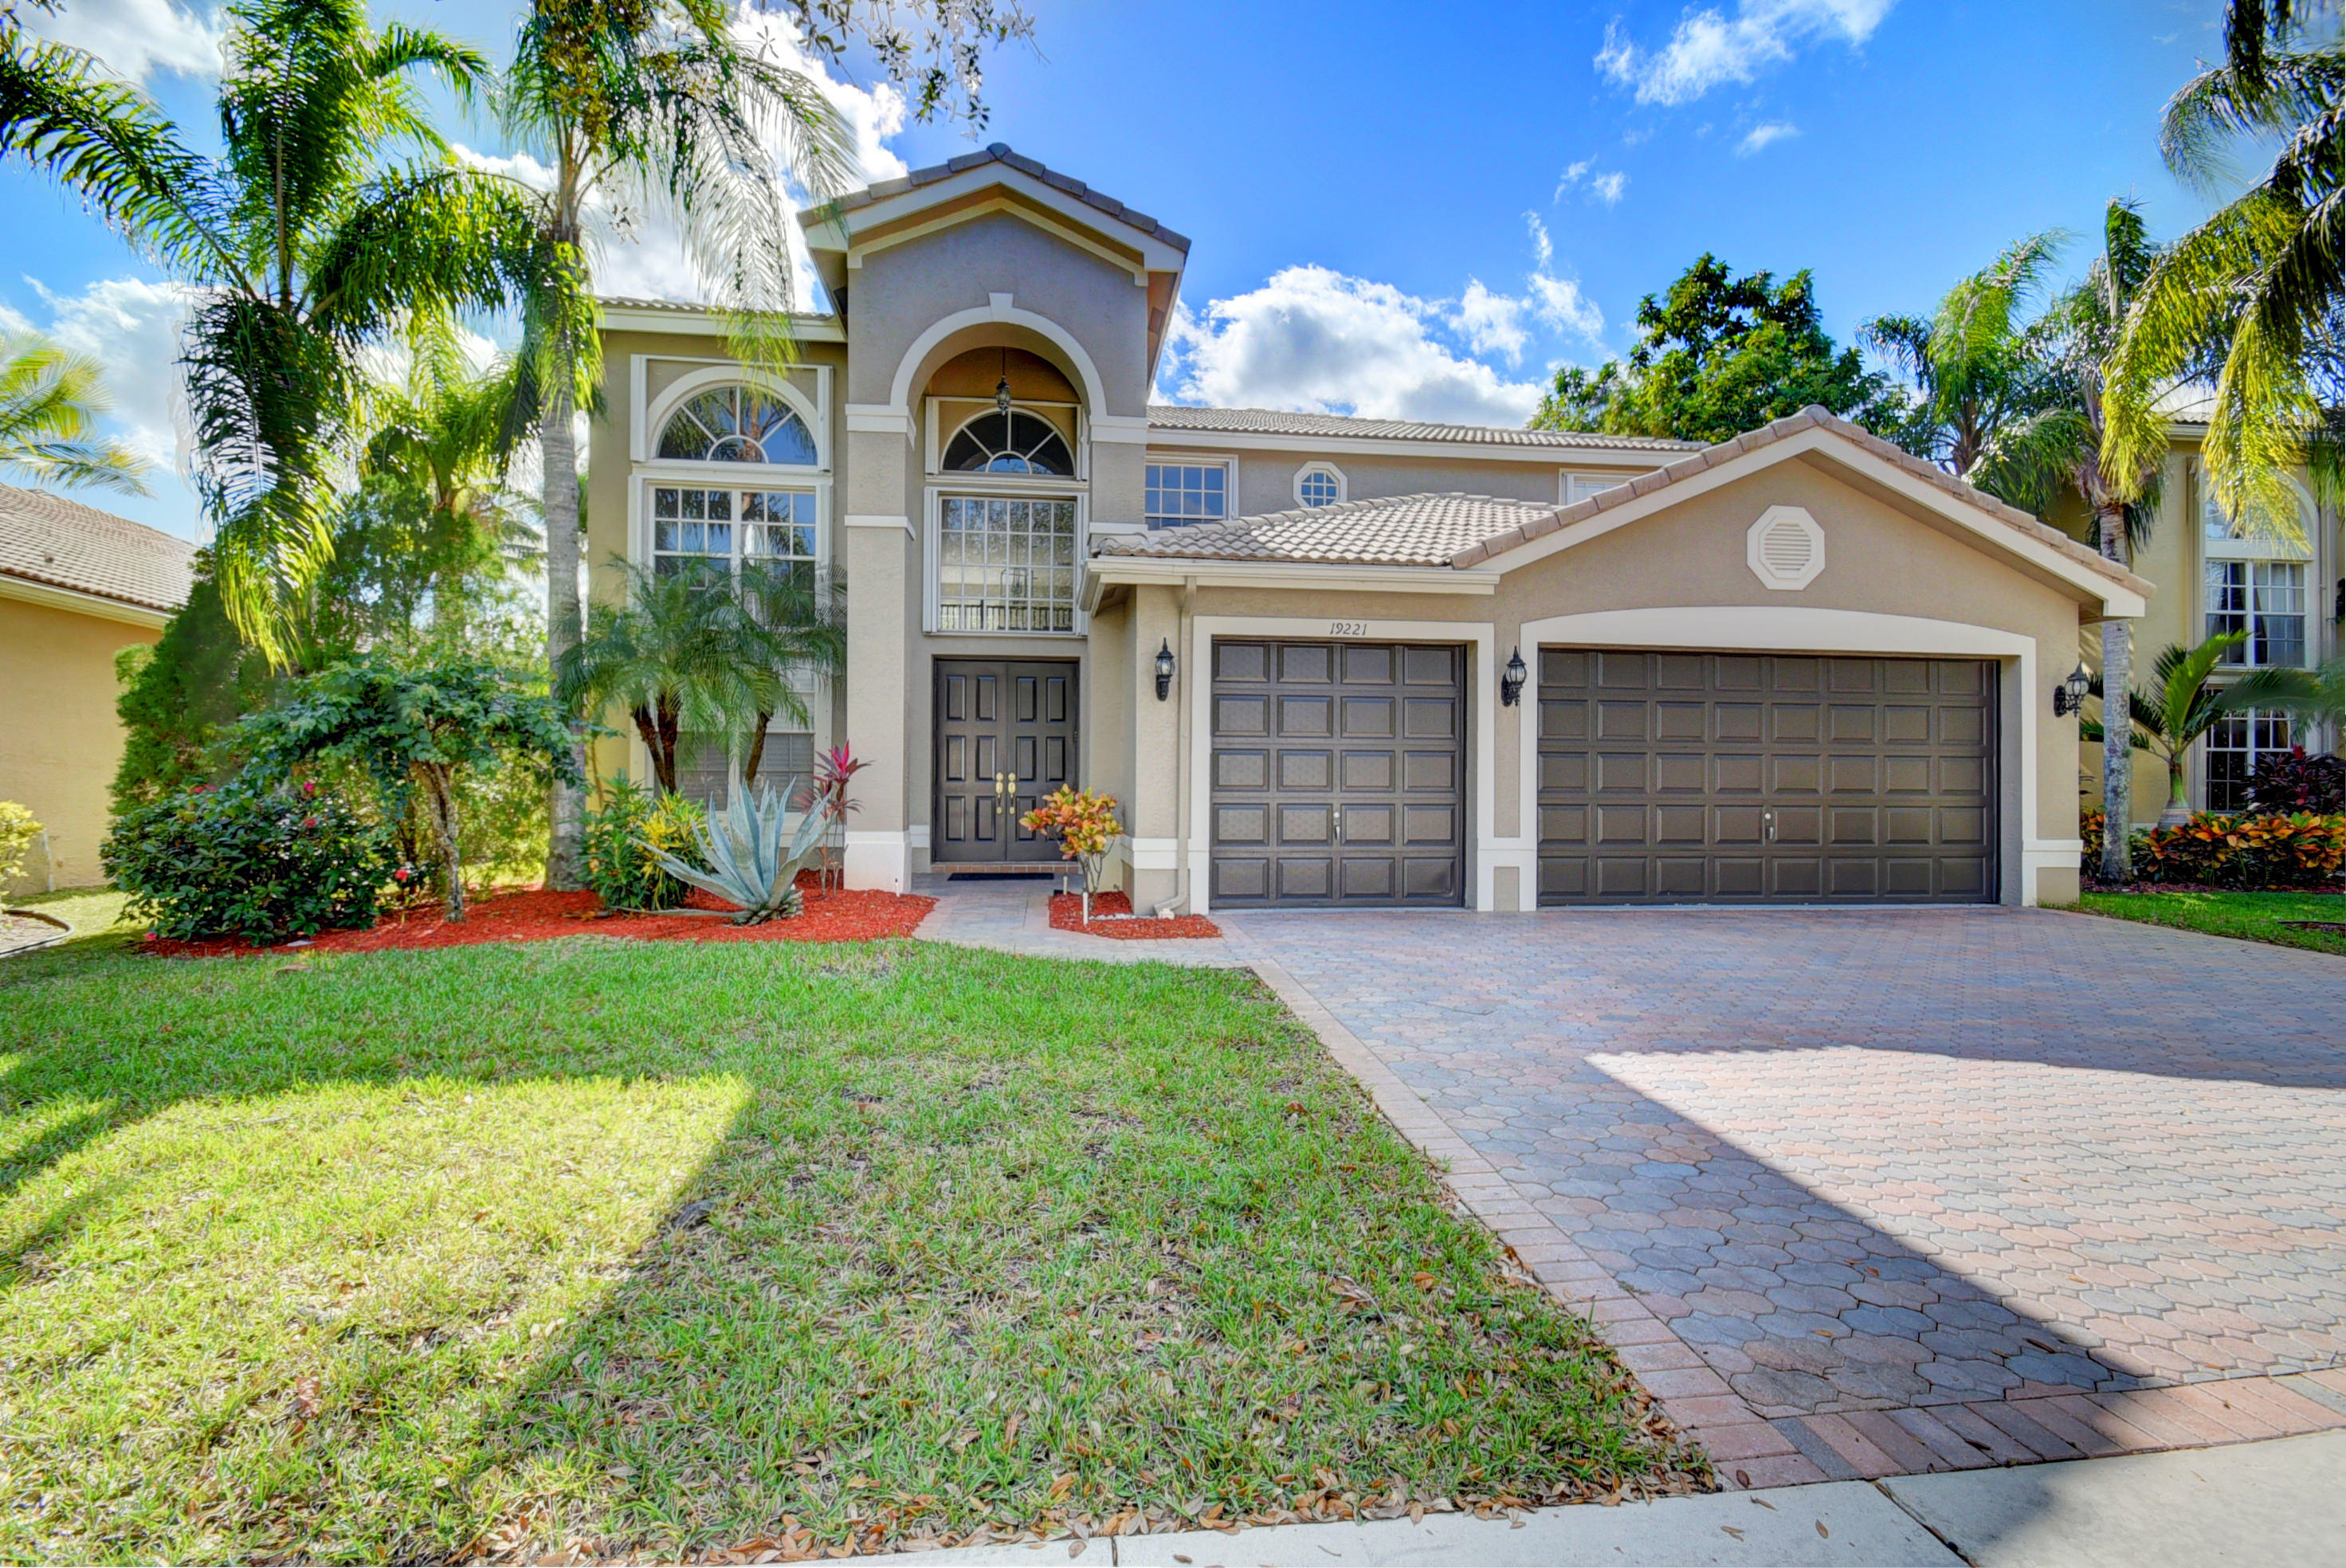 Photo of 19221 Skyridge Circle, Boca Raton, FL 33498